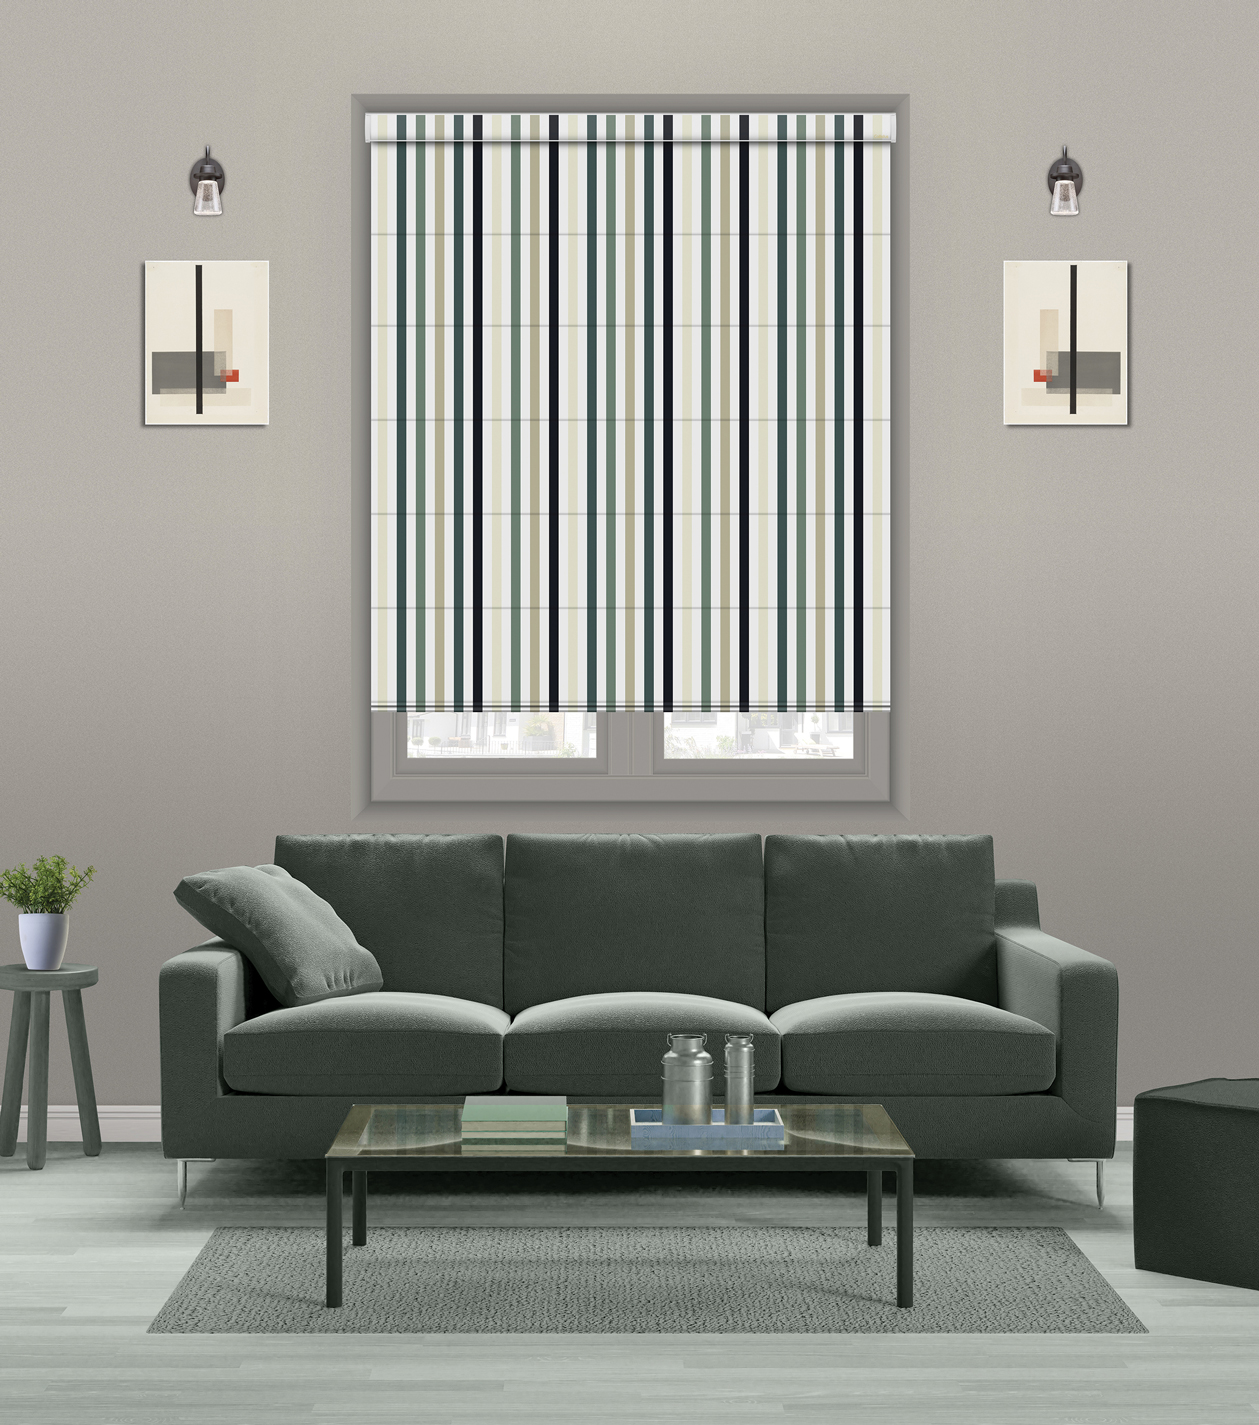 Roman printed BLINDS striped vertical